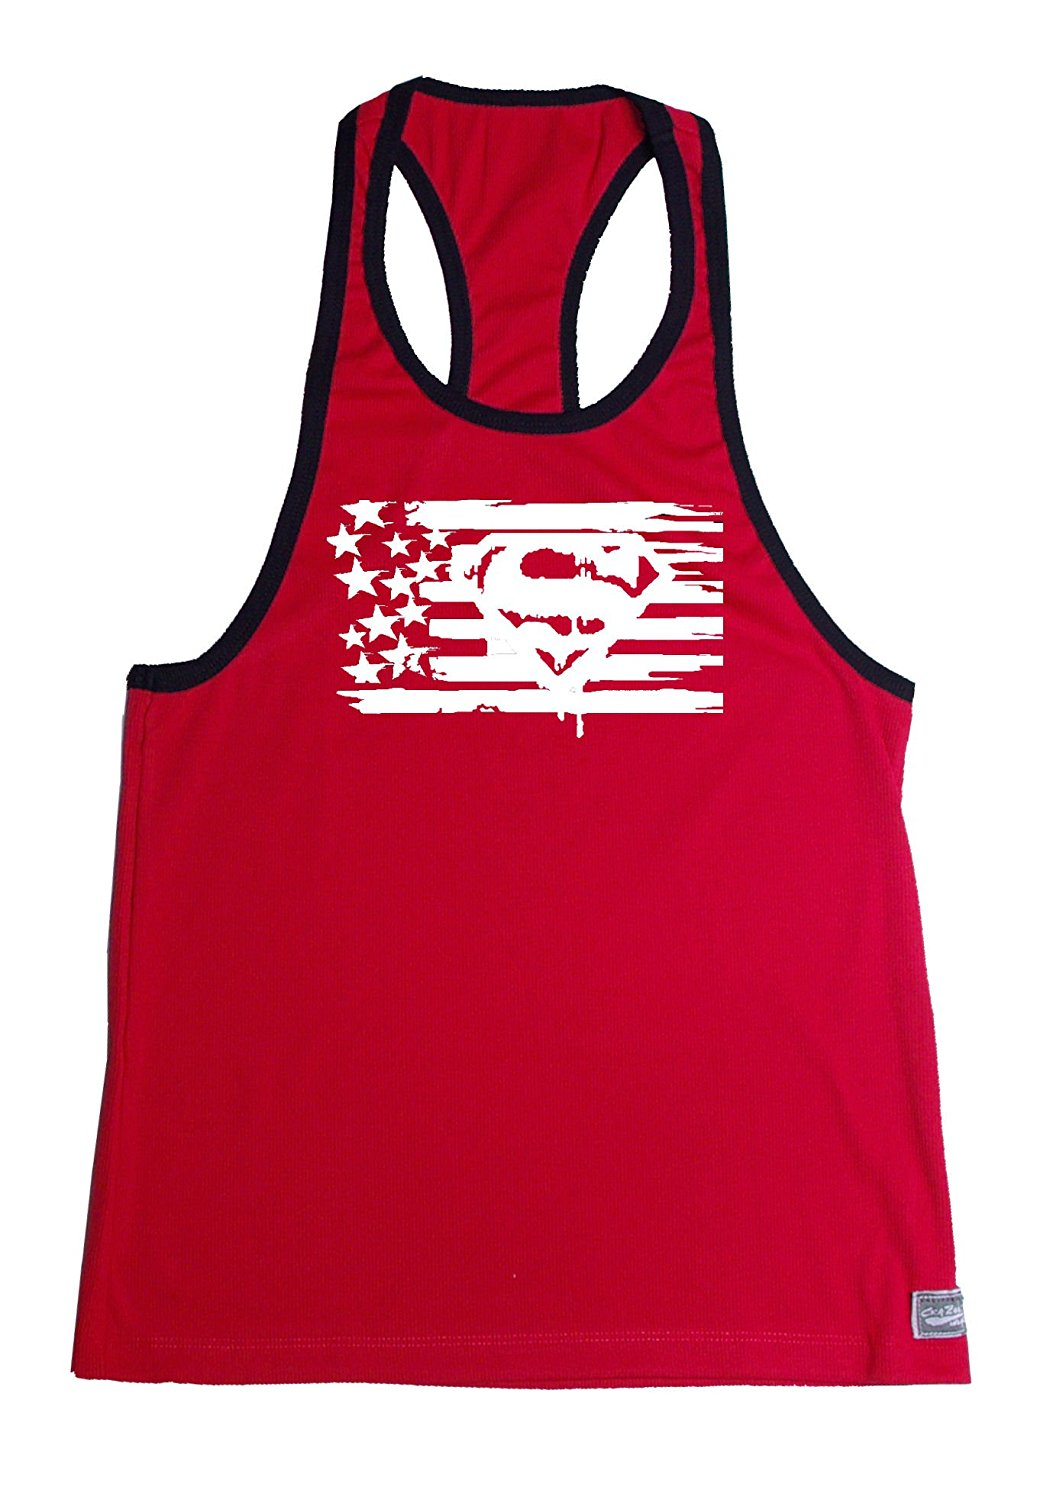 7e67cea5b48a43 Get Quotations · Fitted Stringer Hardcore Bodybuilder Tank Top With White  Super Flag Design